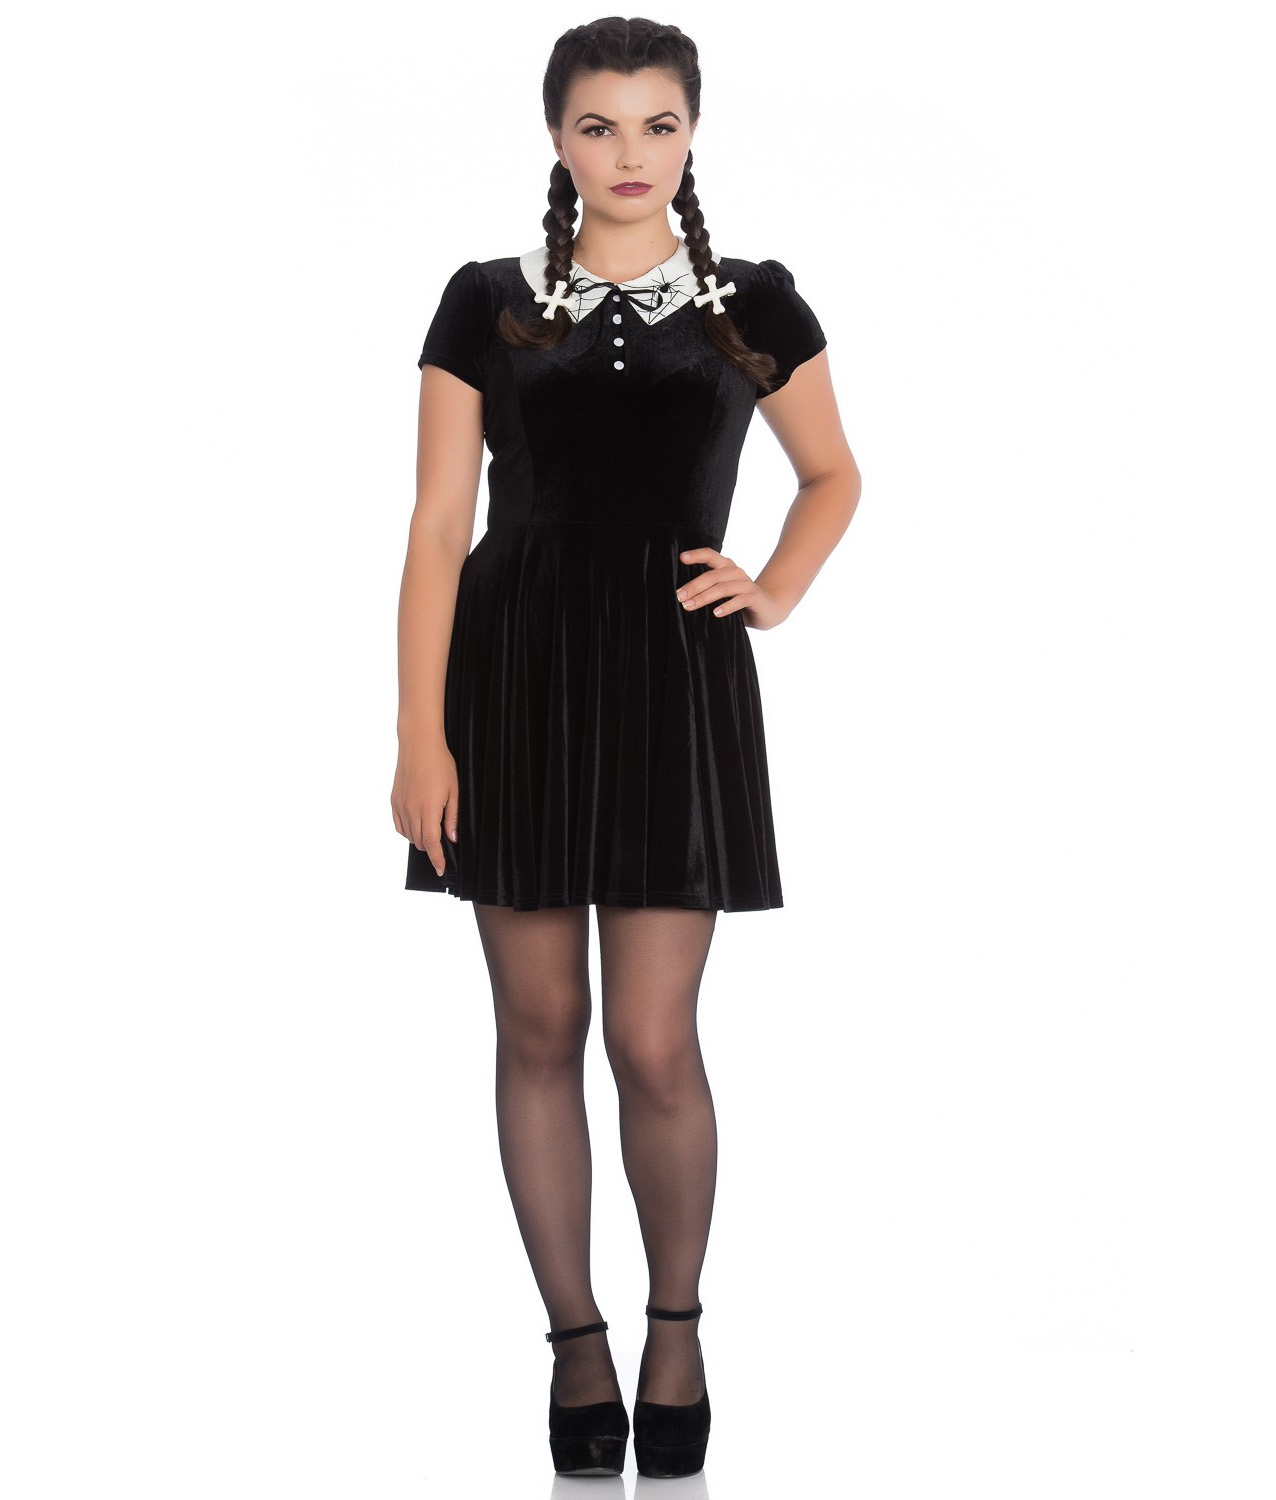 Hell-Bunny-Gothic-Mini-Skater-Dress-MISS-MUFFET-Spiders-Black-Velvet-All-Sizes thumbnail 7